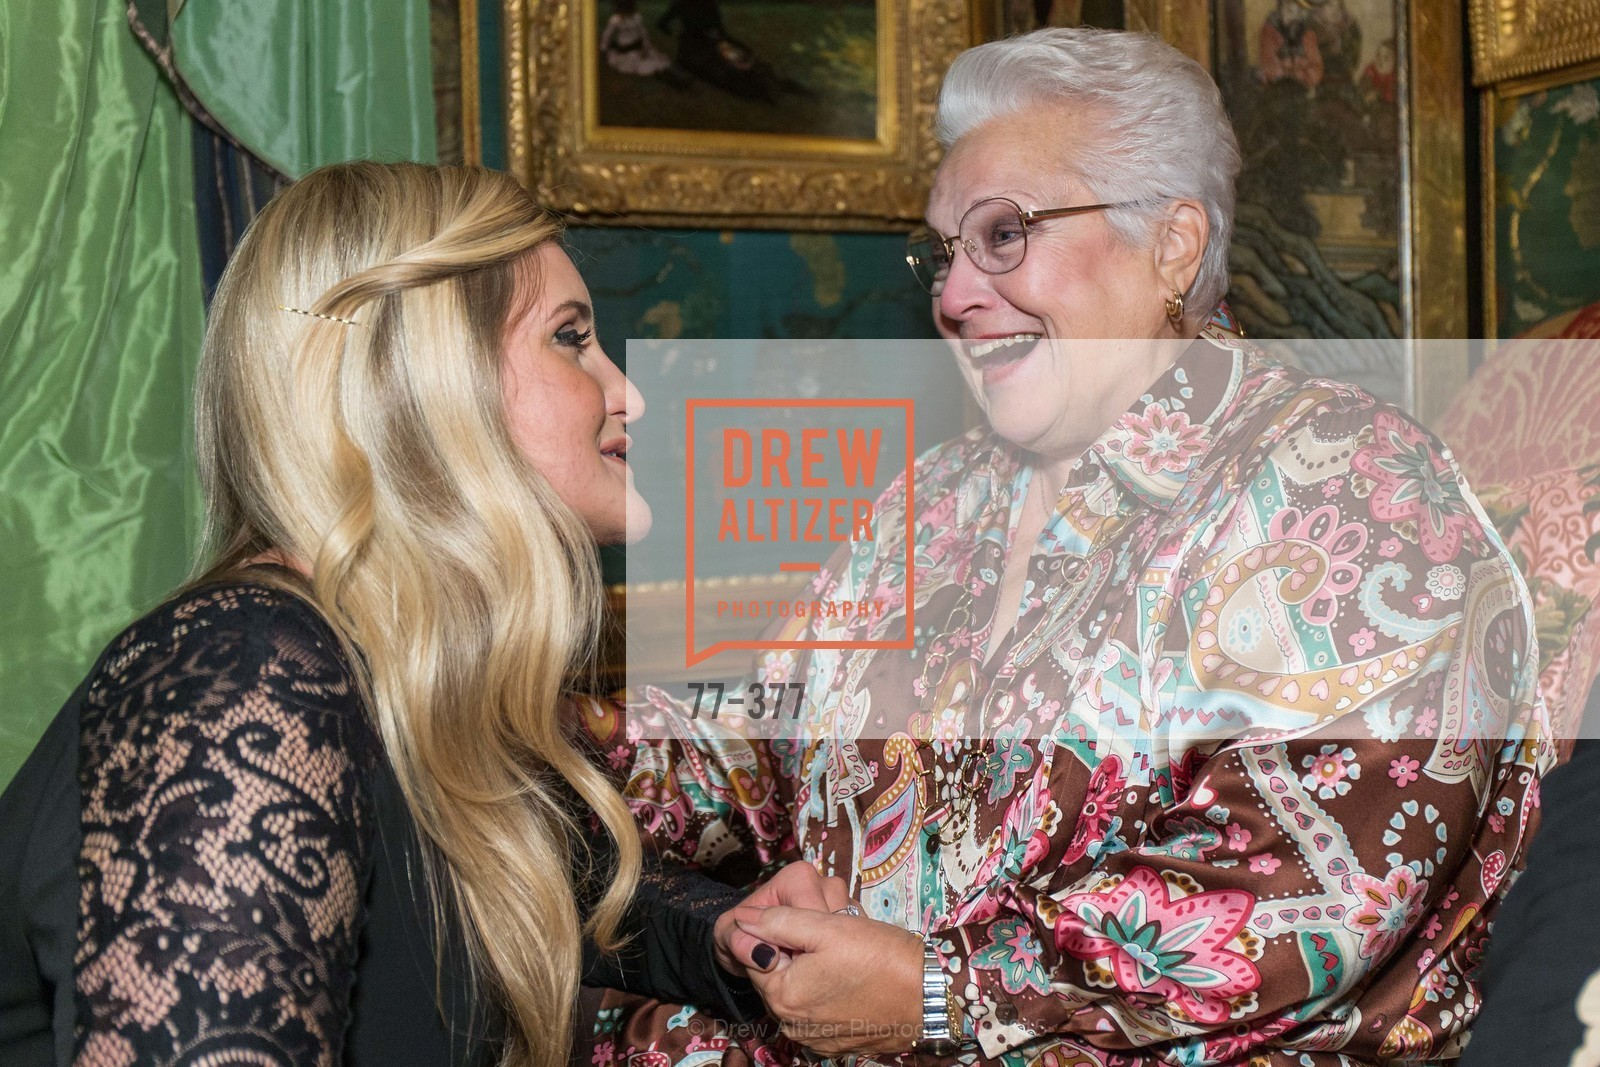 Julie Adams, Marilyn Horne, Ann and Gordon Getty Host SF Conservatory of Music with Marilyn Horne, Private Residence, October 15th, 2015,Drew Altizer, Drew Altizer Photography, full-service agency, private events, San Francisco photographer, photographer california